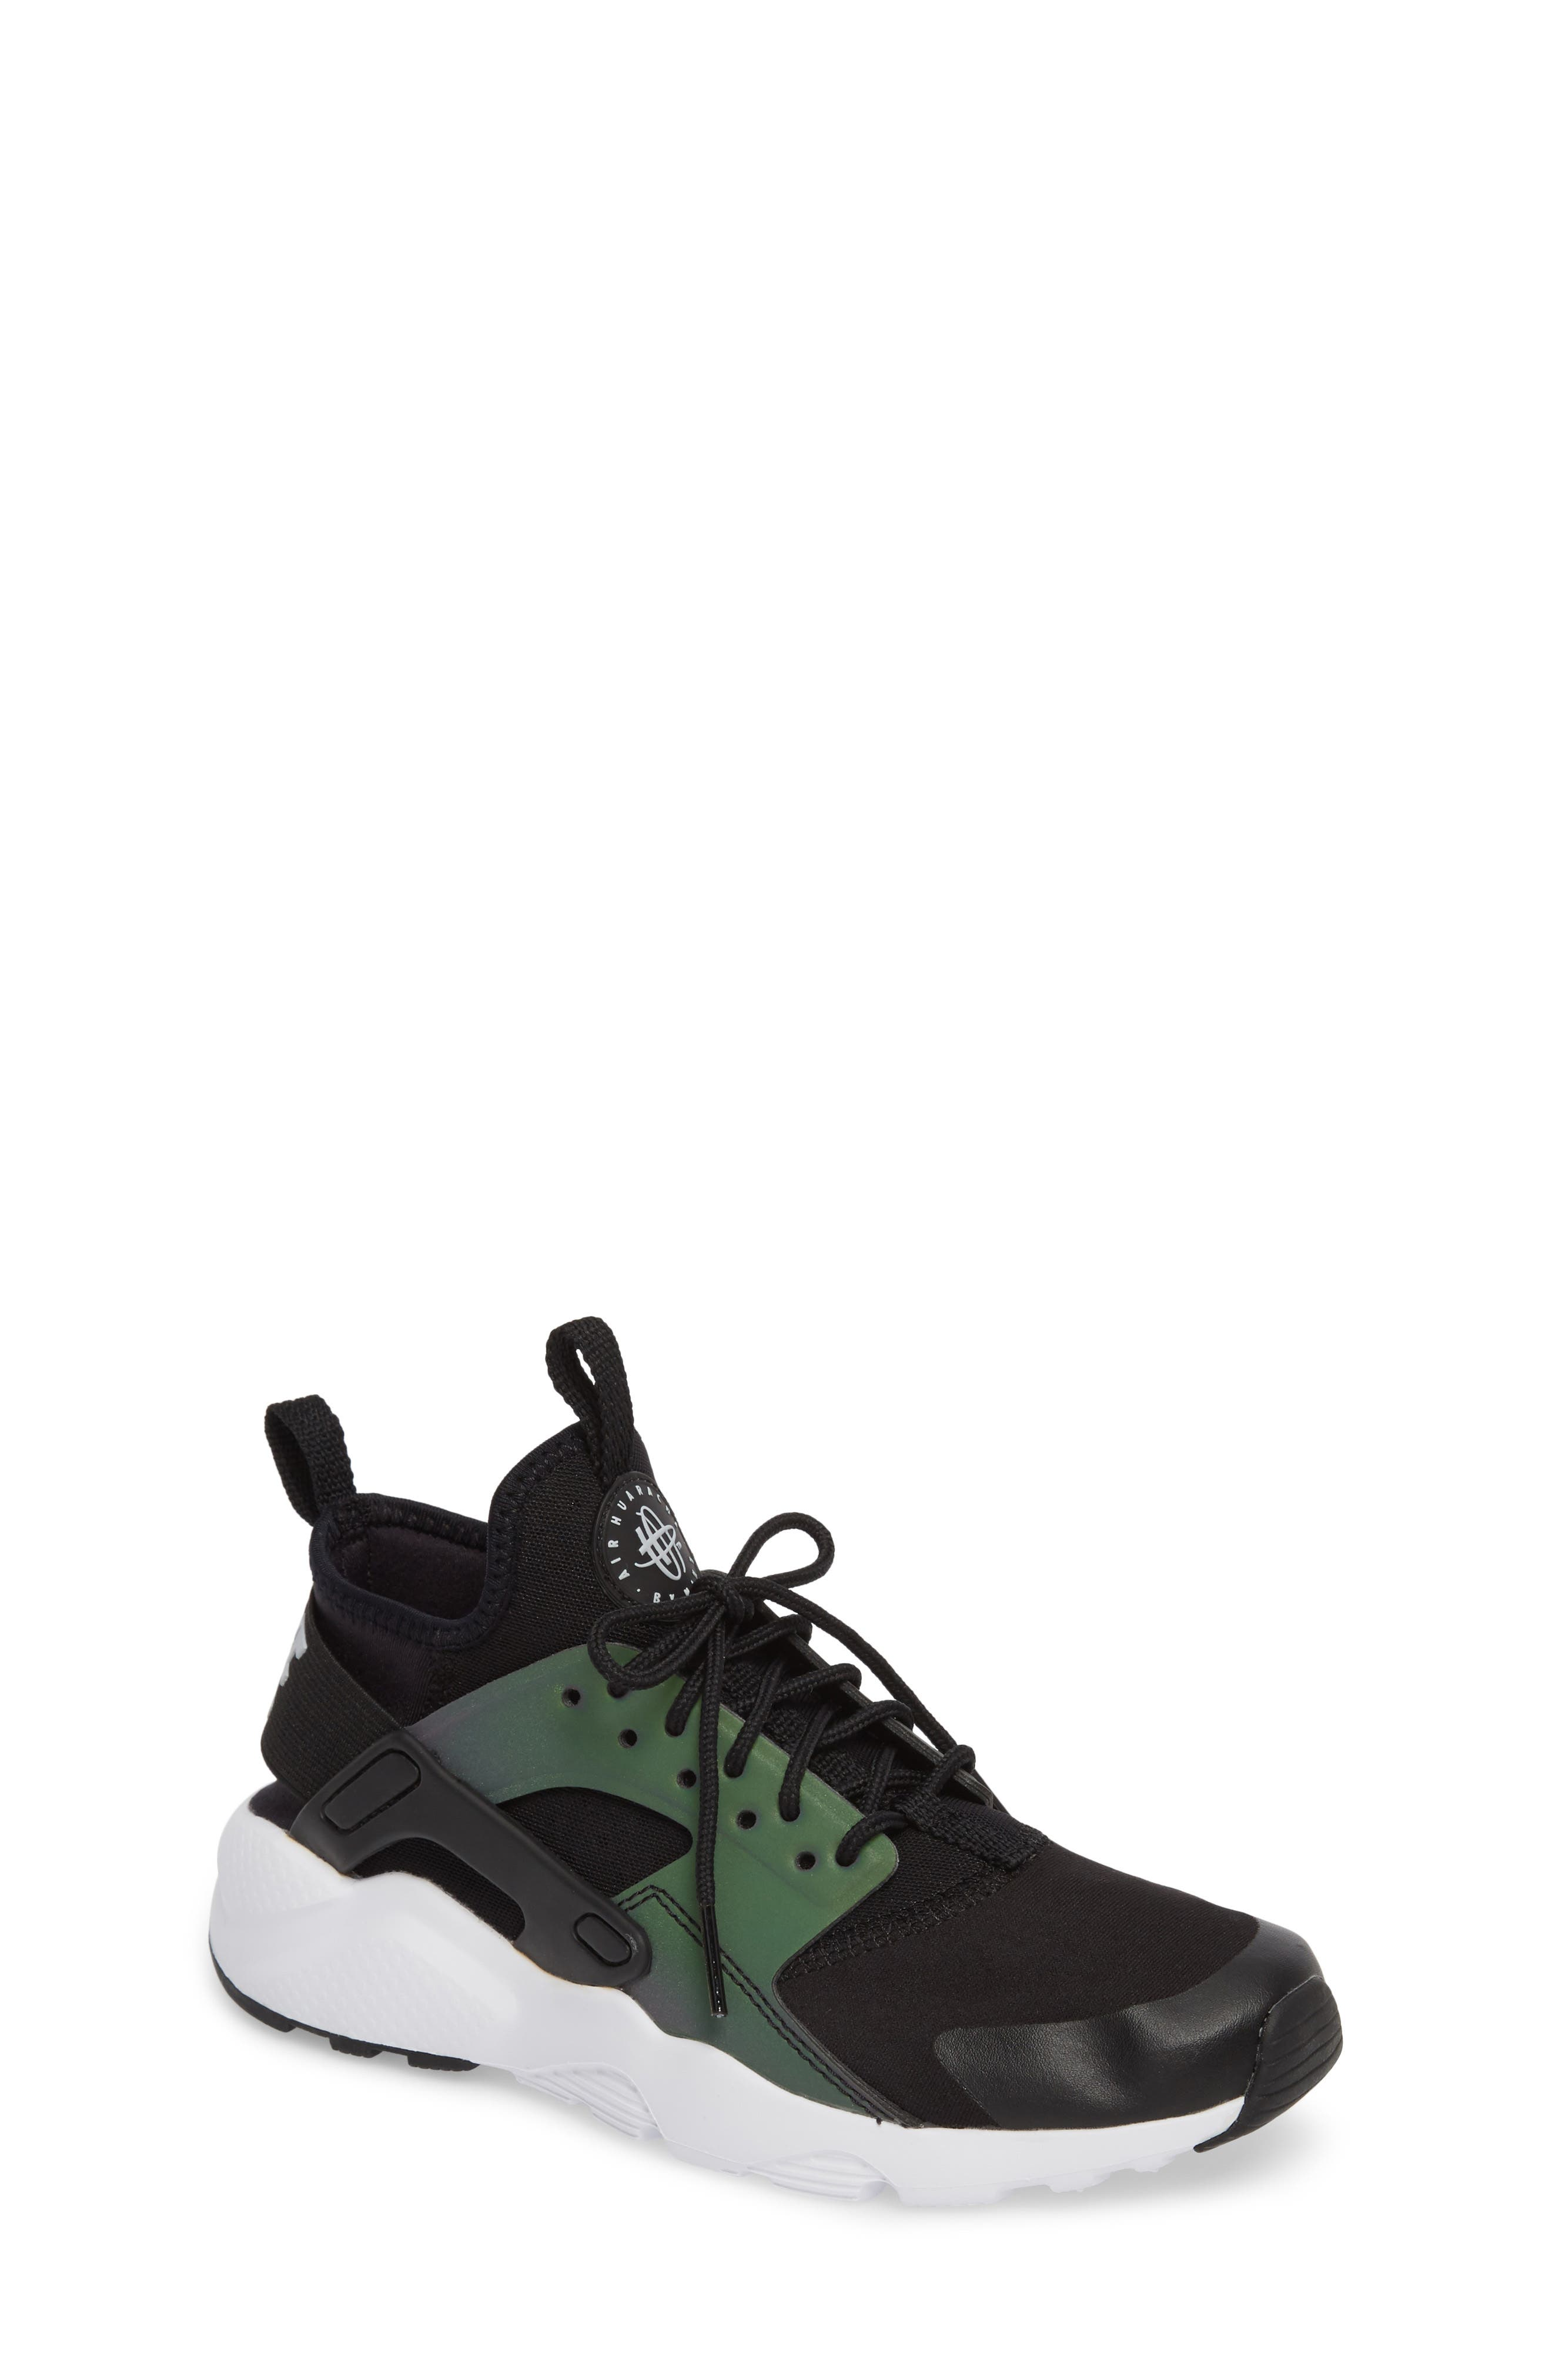 Air Huarache Run SE Sneaker,                             Main thumbnail 1, color,                             Black/ Wolf Grey-White